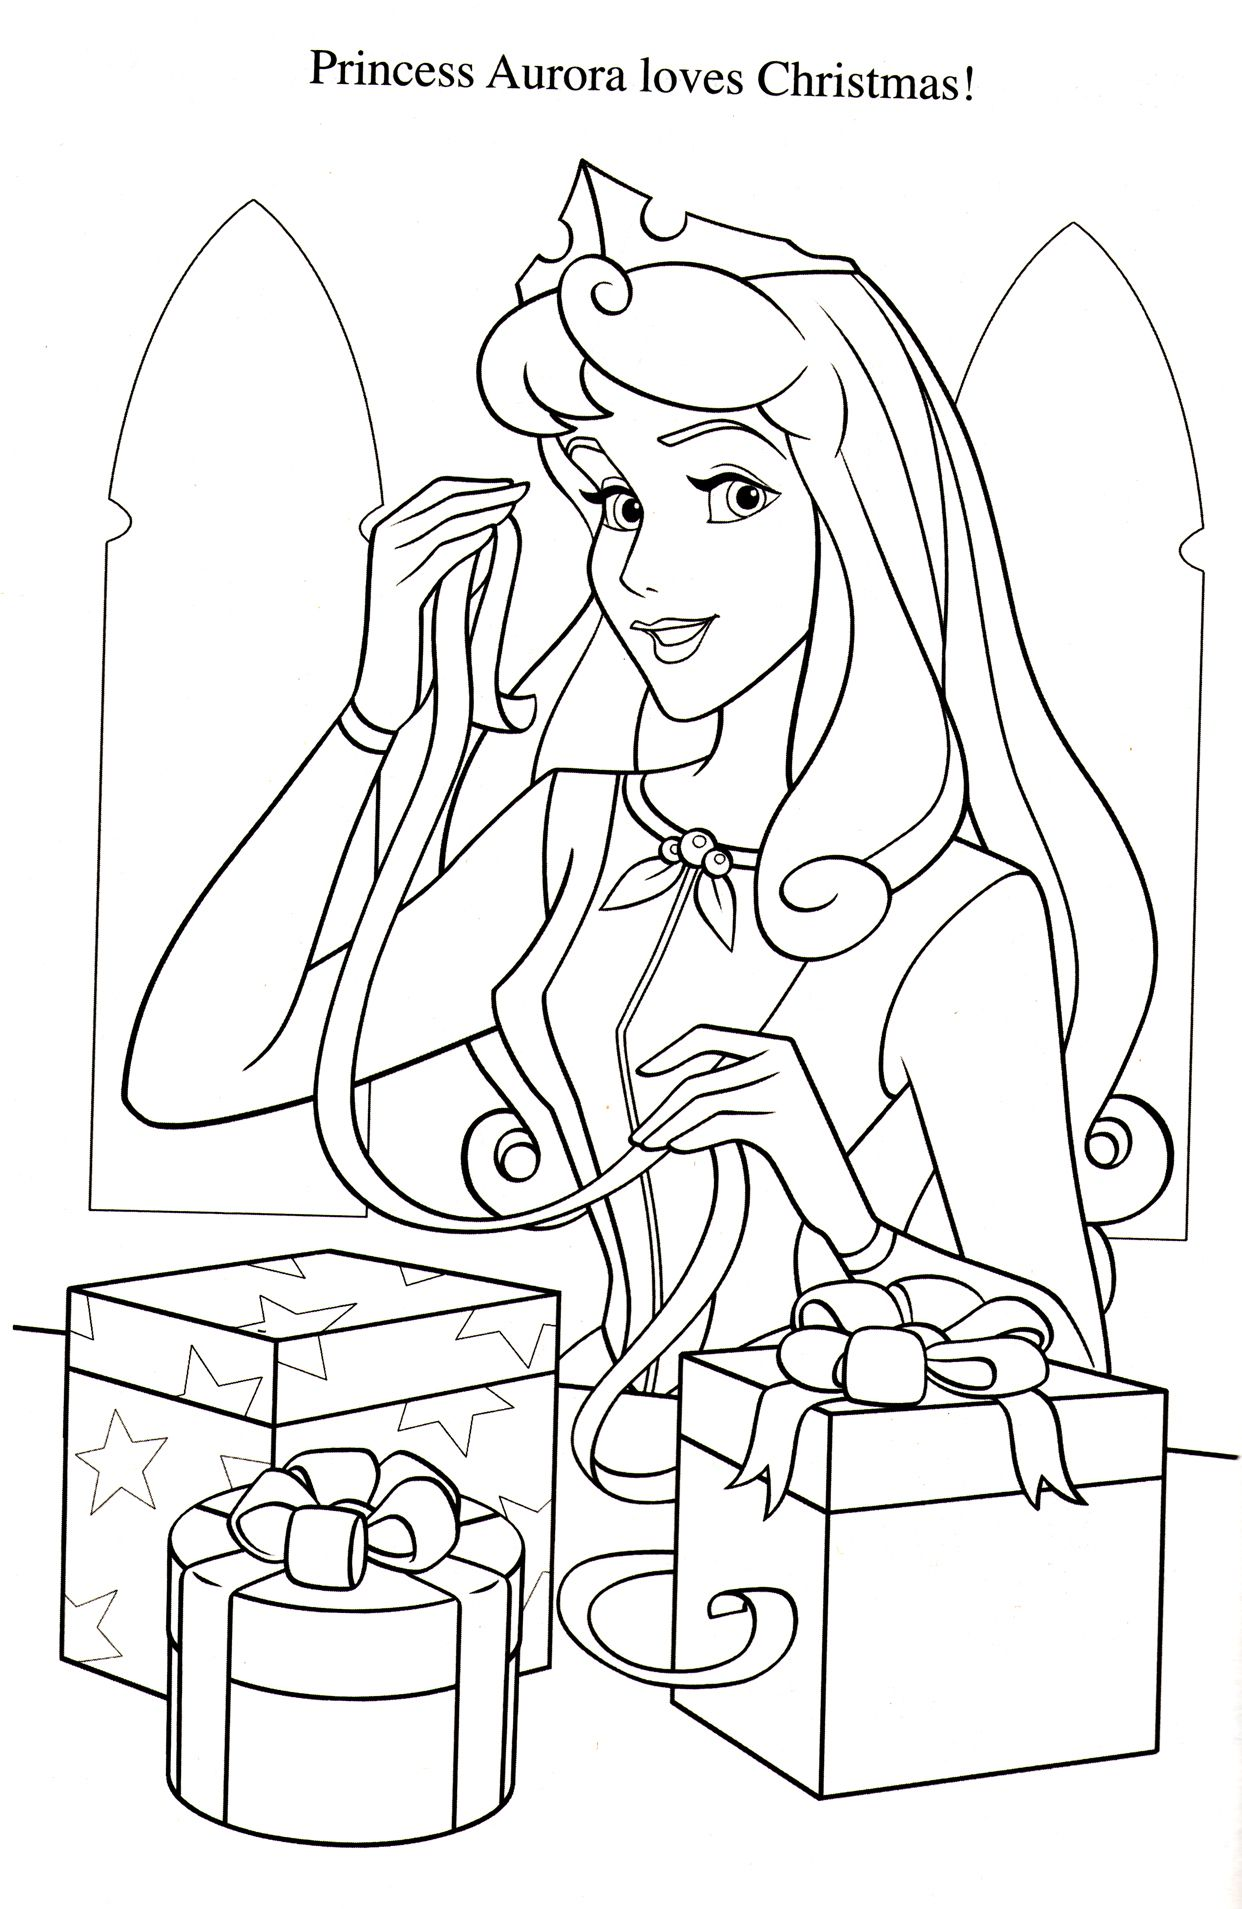 Disney Coloring Pages | Pinteresting | Pinterest | Colorear ...